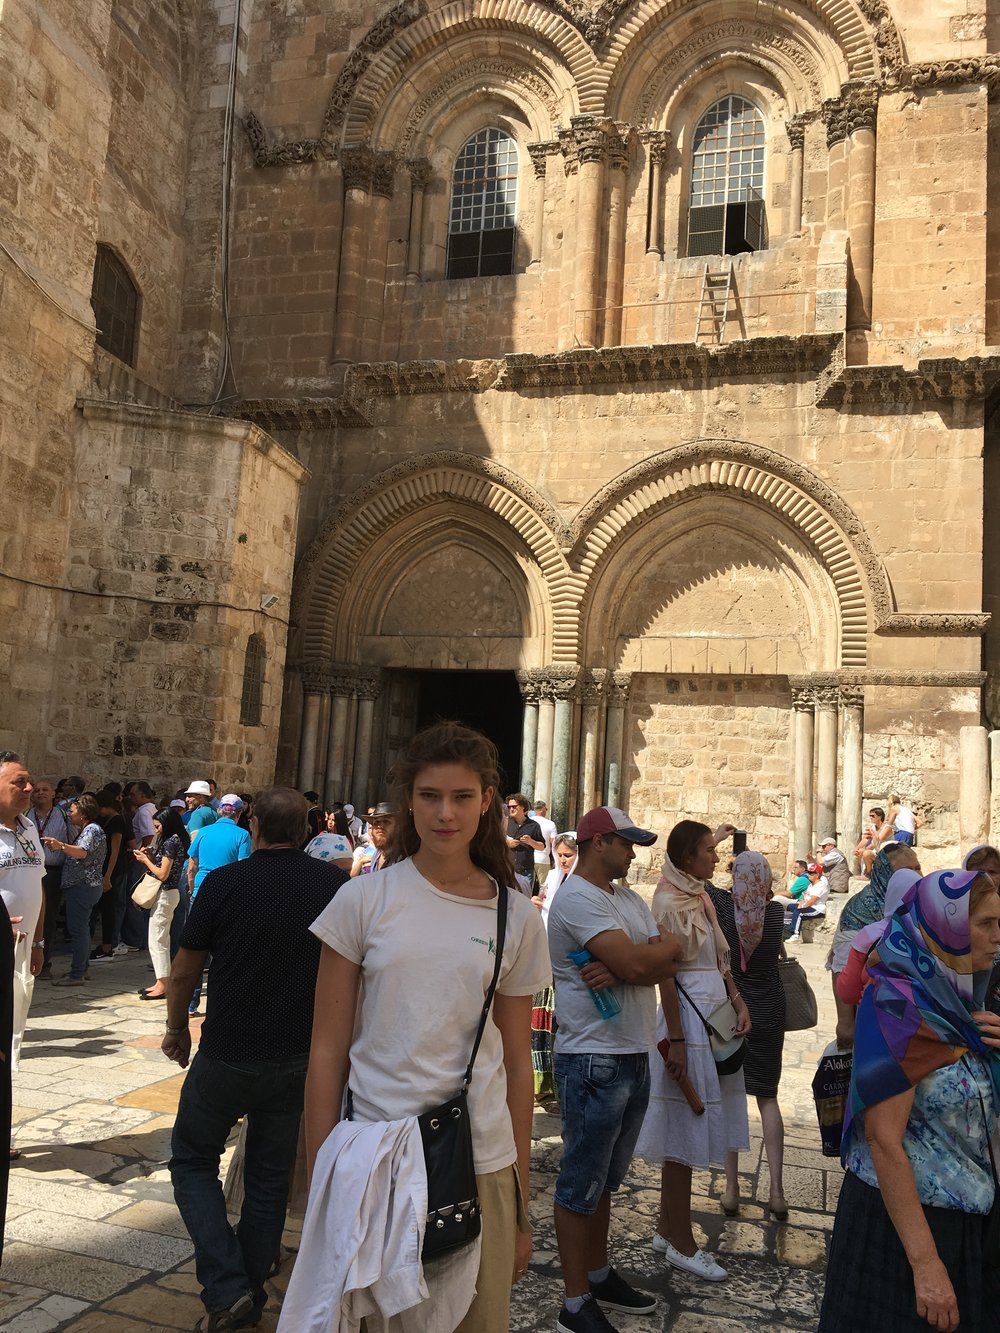 Church of the Holy Sepulcher. Touted as the most holy of Christian sites, this cathedral houses the purported tomb where Christ was interred once taken down from the Cross.